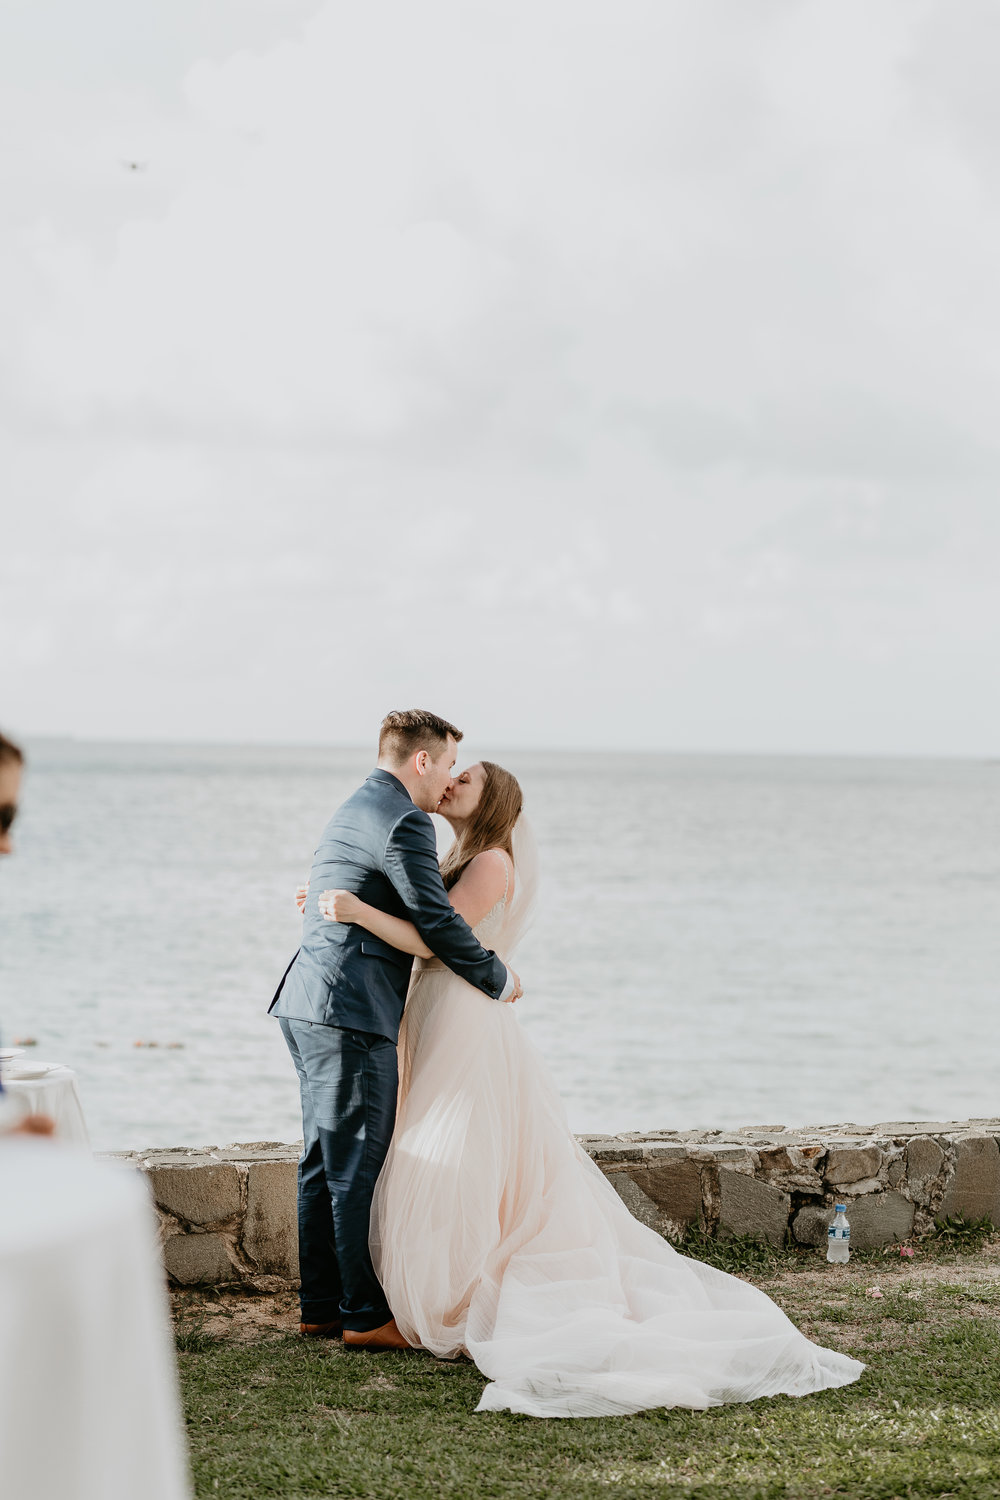 nicole-daacke-photography-destination-wedding-in-st-lucia-sandals-la-toc-intimate-island-wedding-carribean-elopement-photographer-chill-island-wedding-105.jpg